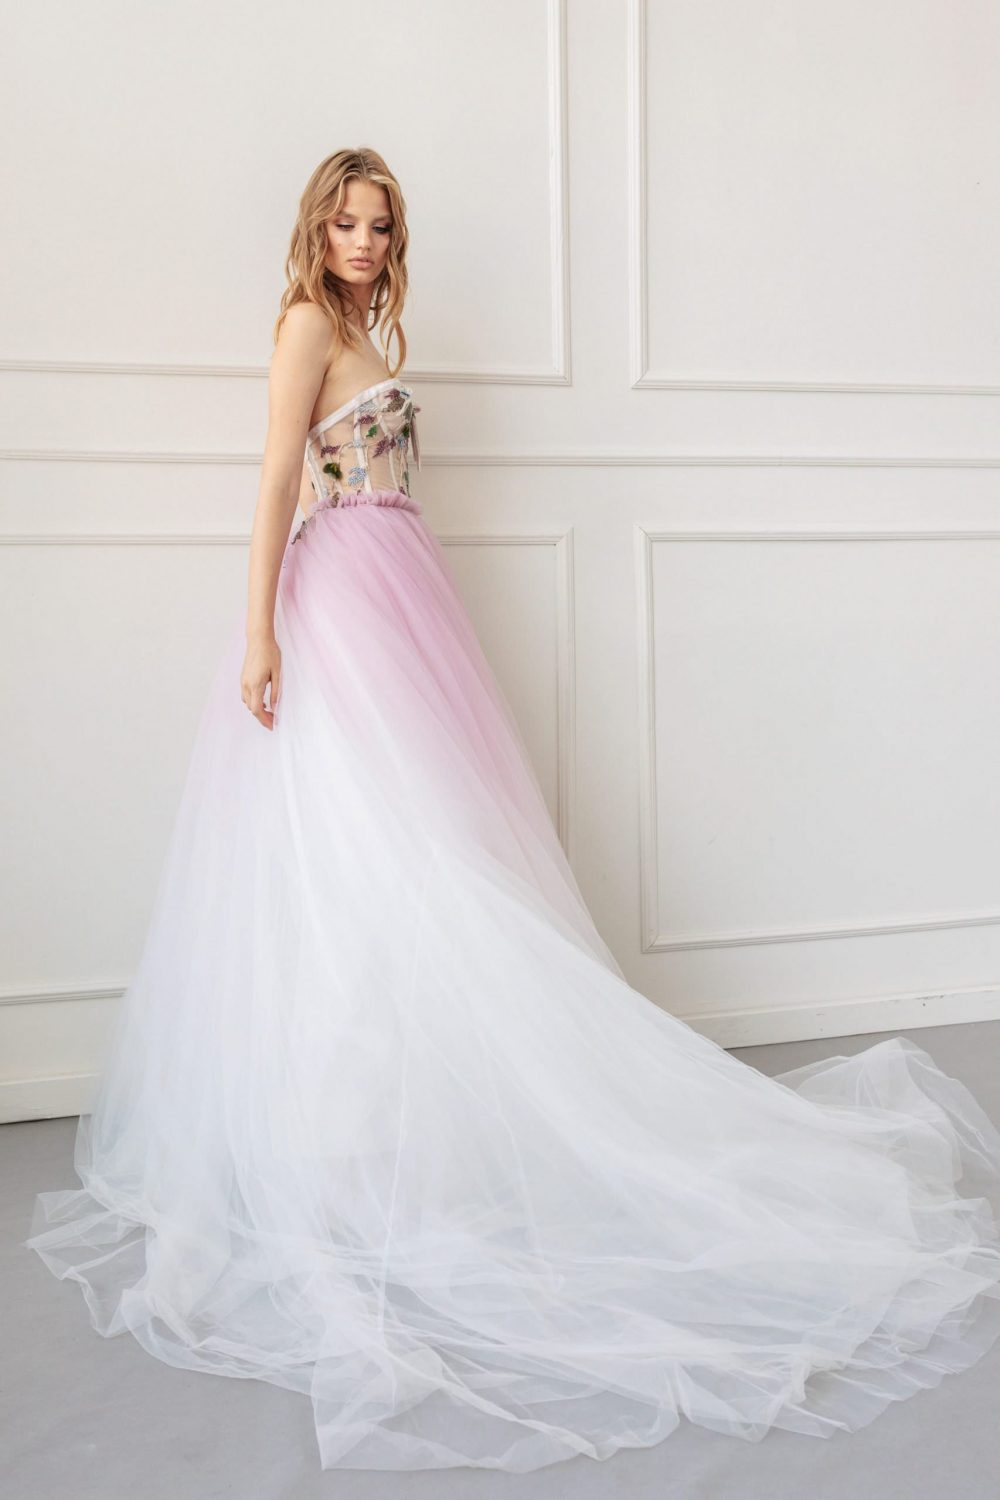 Wedding gown Ange Etoiles Dion